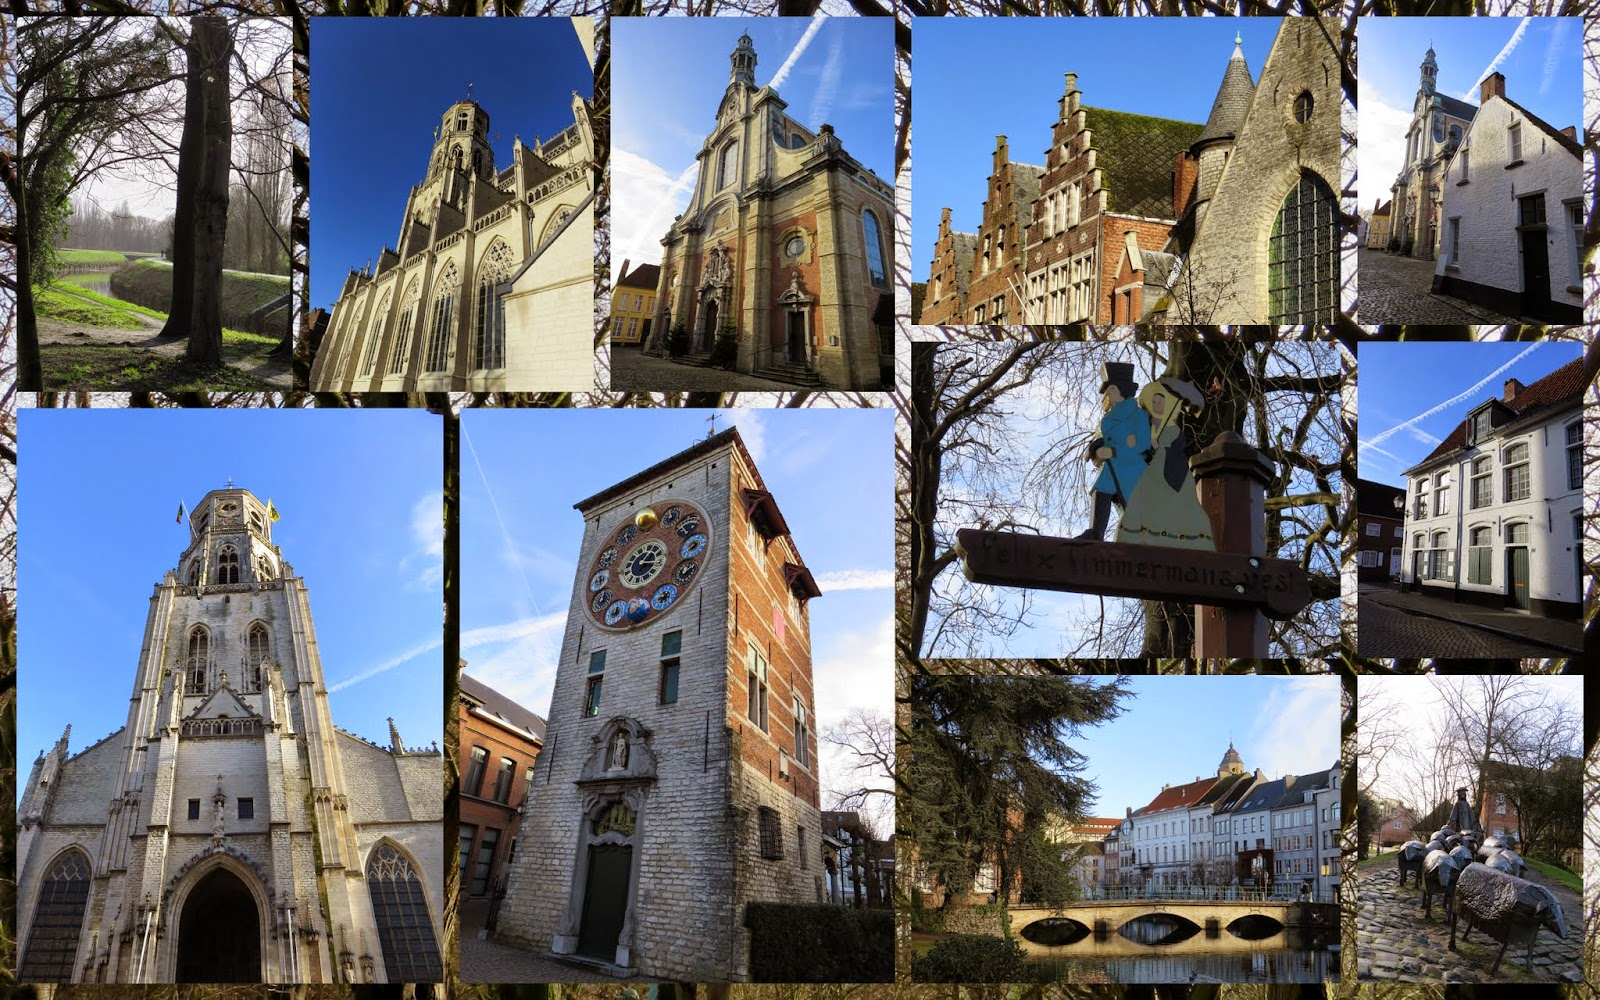 Visiting Lier, Belgium by rail